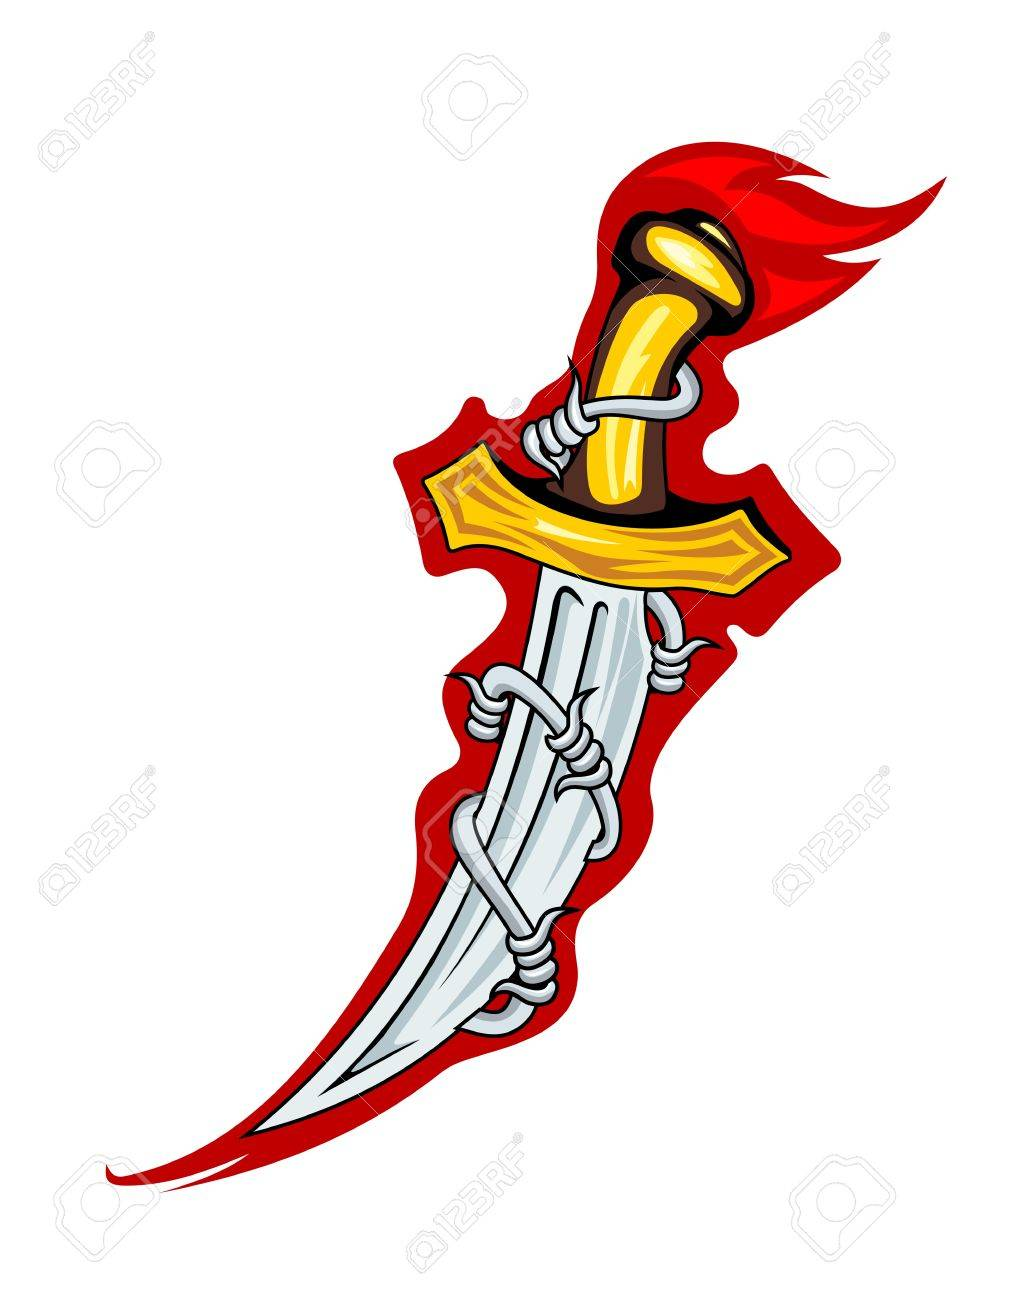 Medieval dagger with barbed wire for tattoo or mascot design Stock Vector - 12072974